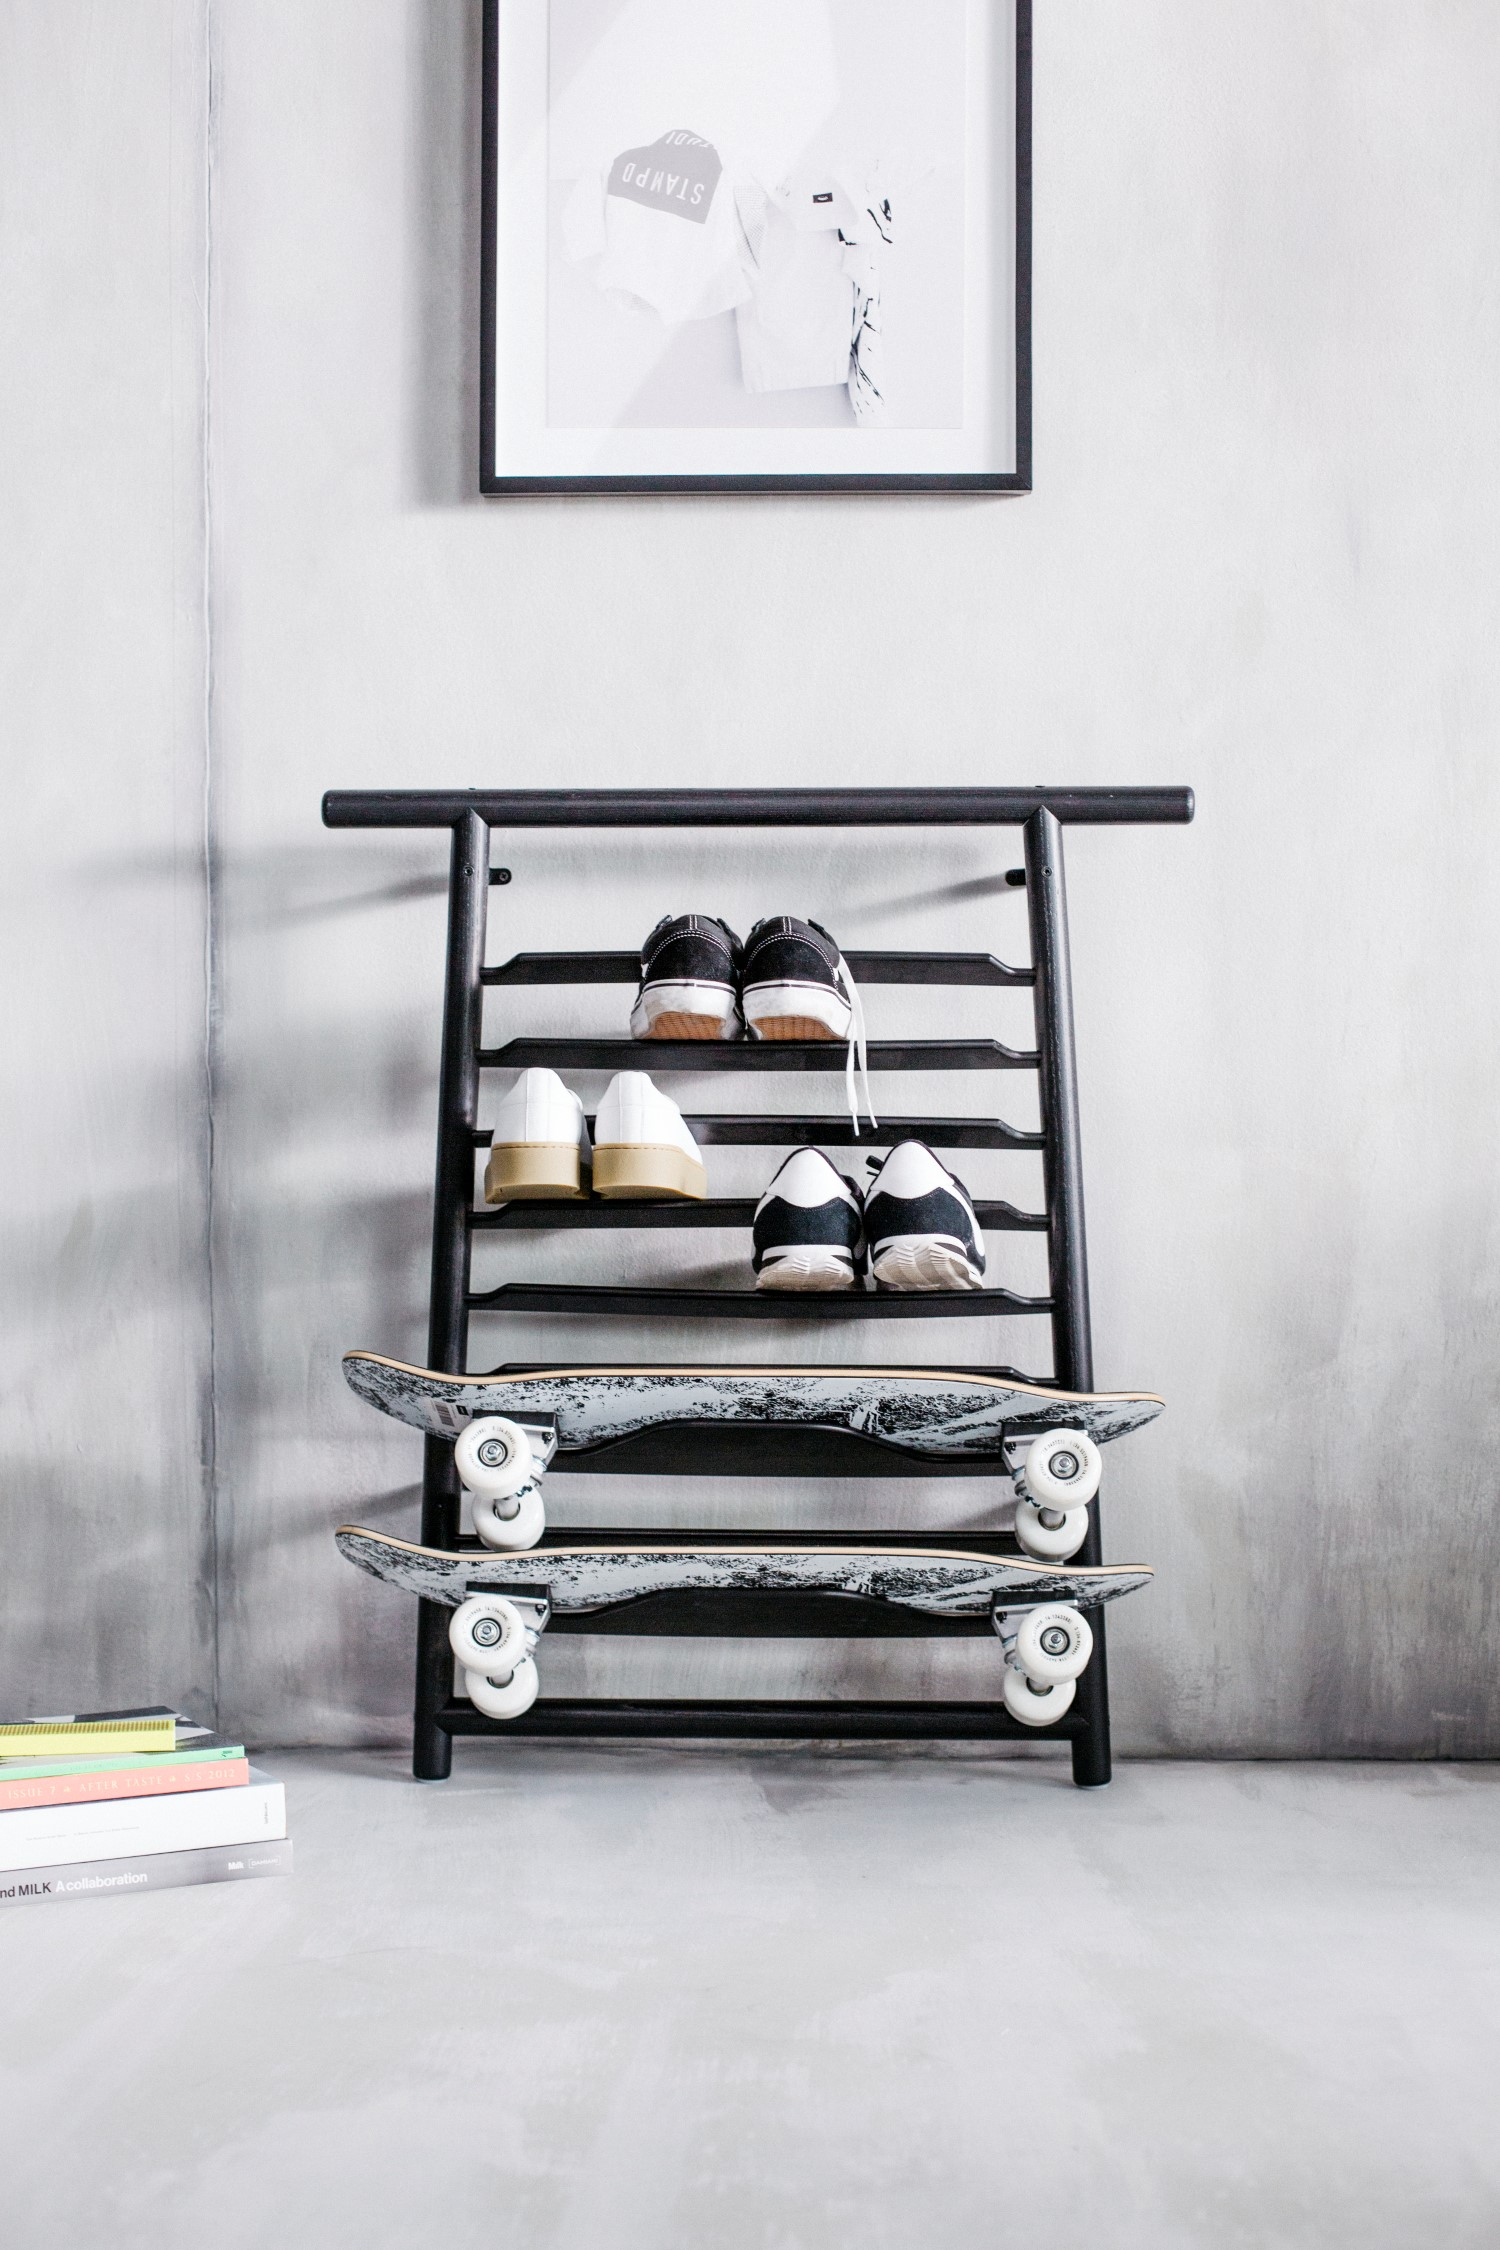 sneakers and skateboard in the ikea spanst case